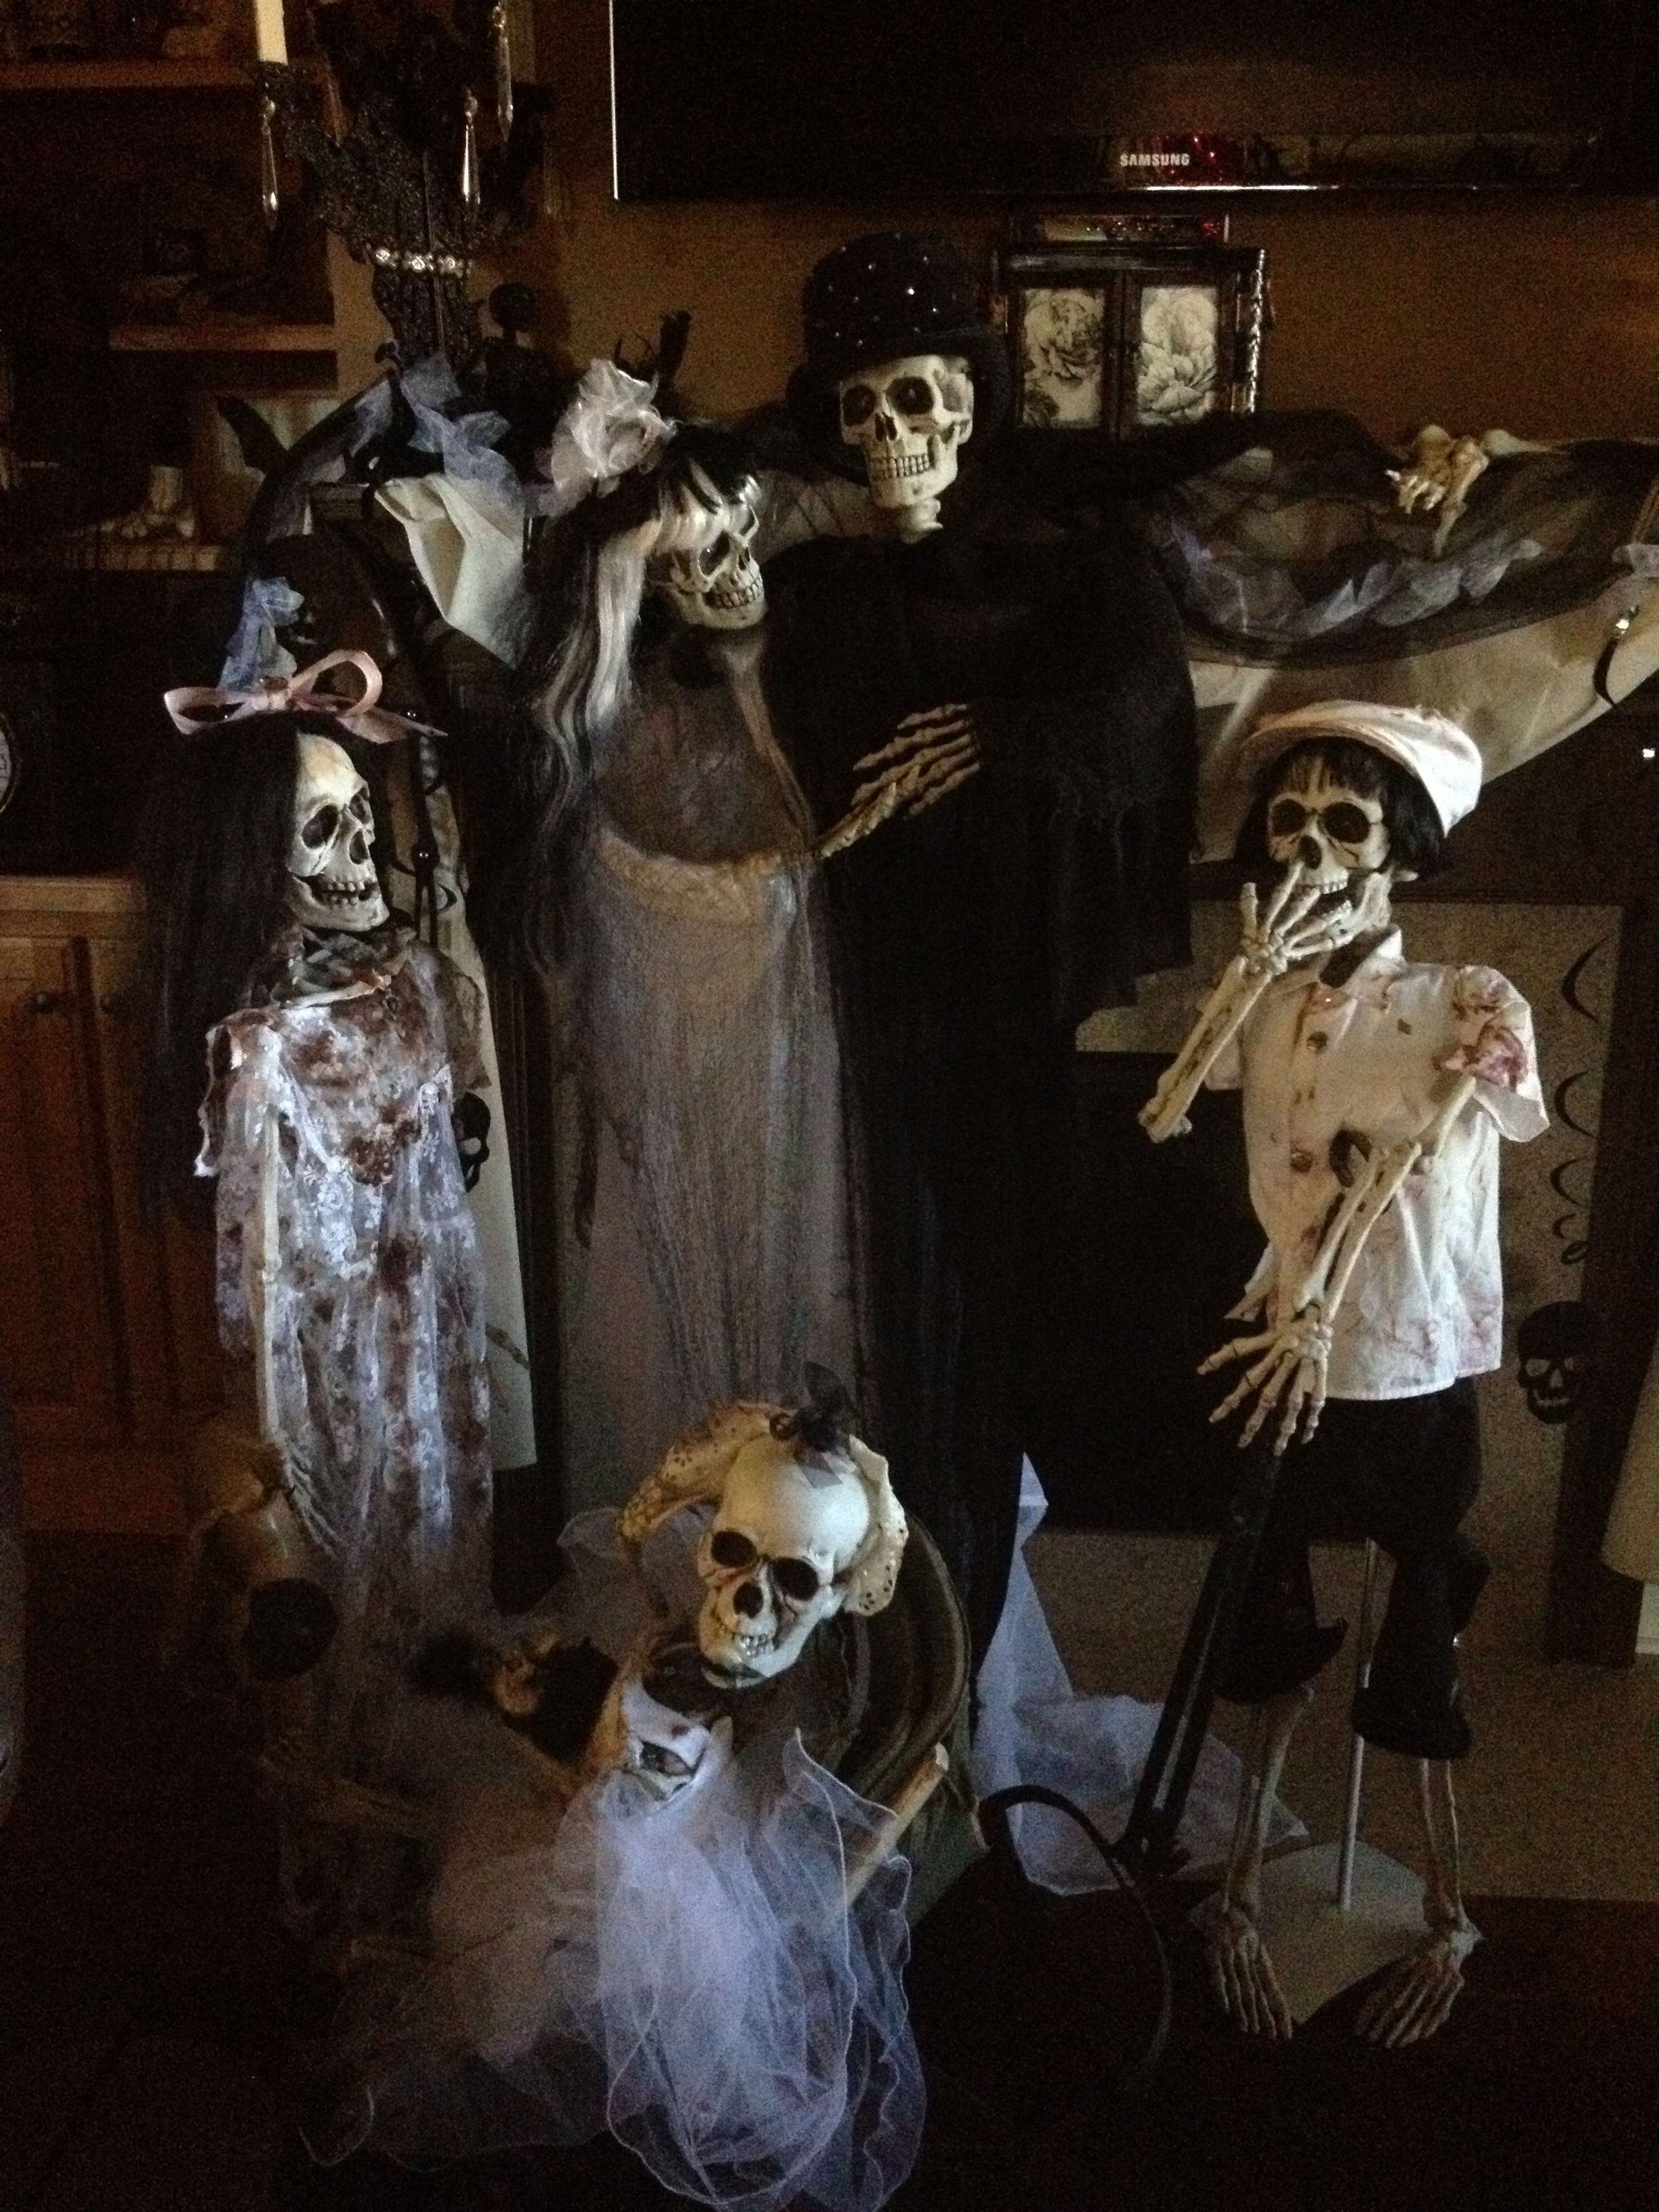 My mom works hard on her Halloween stuff every year. It is